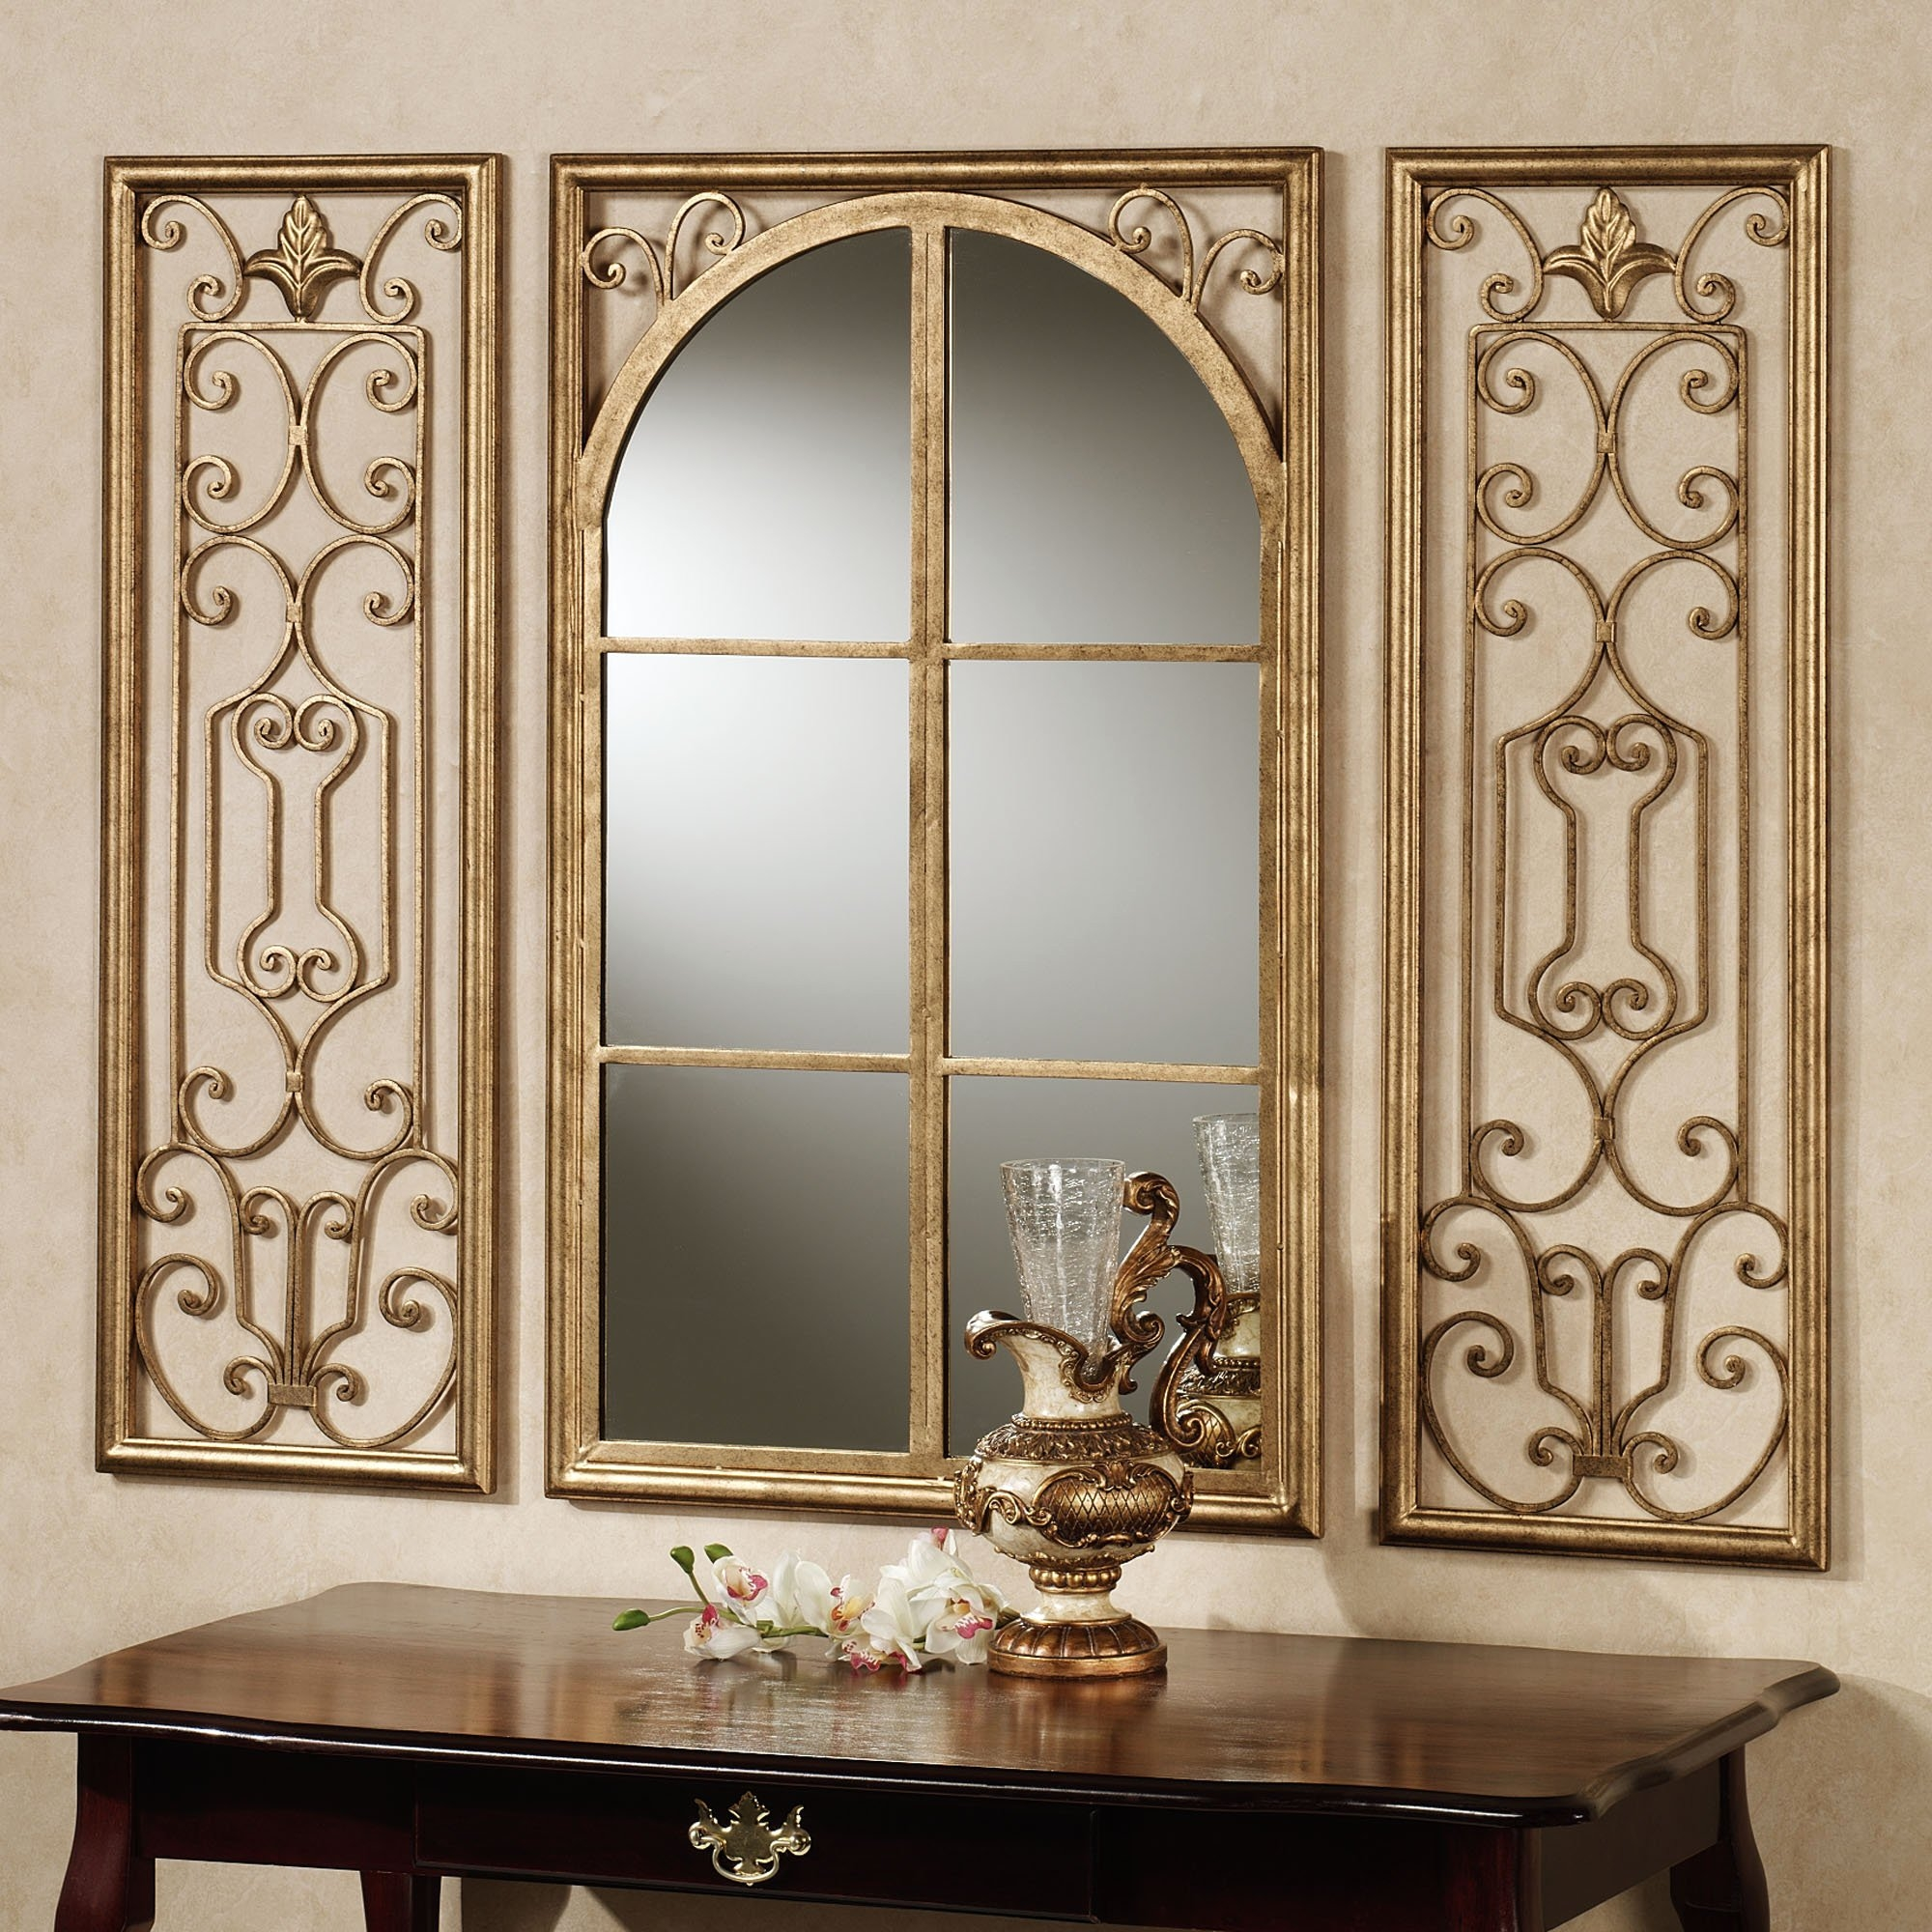 14 collection of fancy mirrors for sale mirror ideas. Black Bedroom Furniture Sets. Home Design Ideas